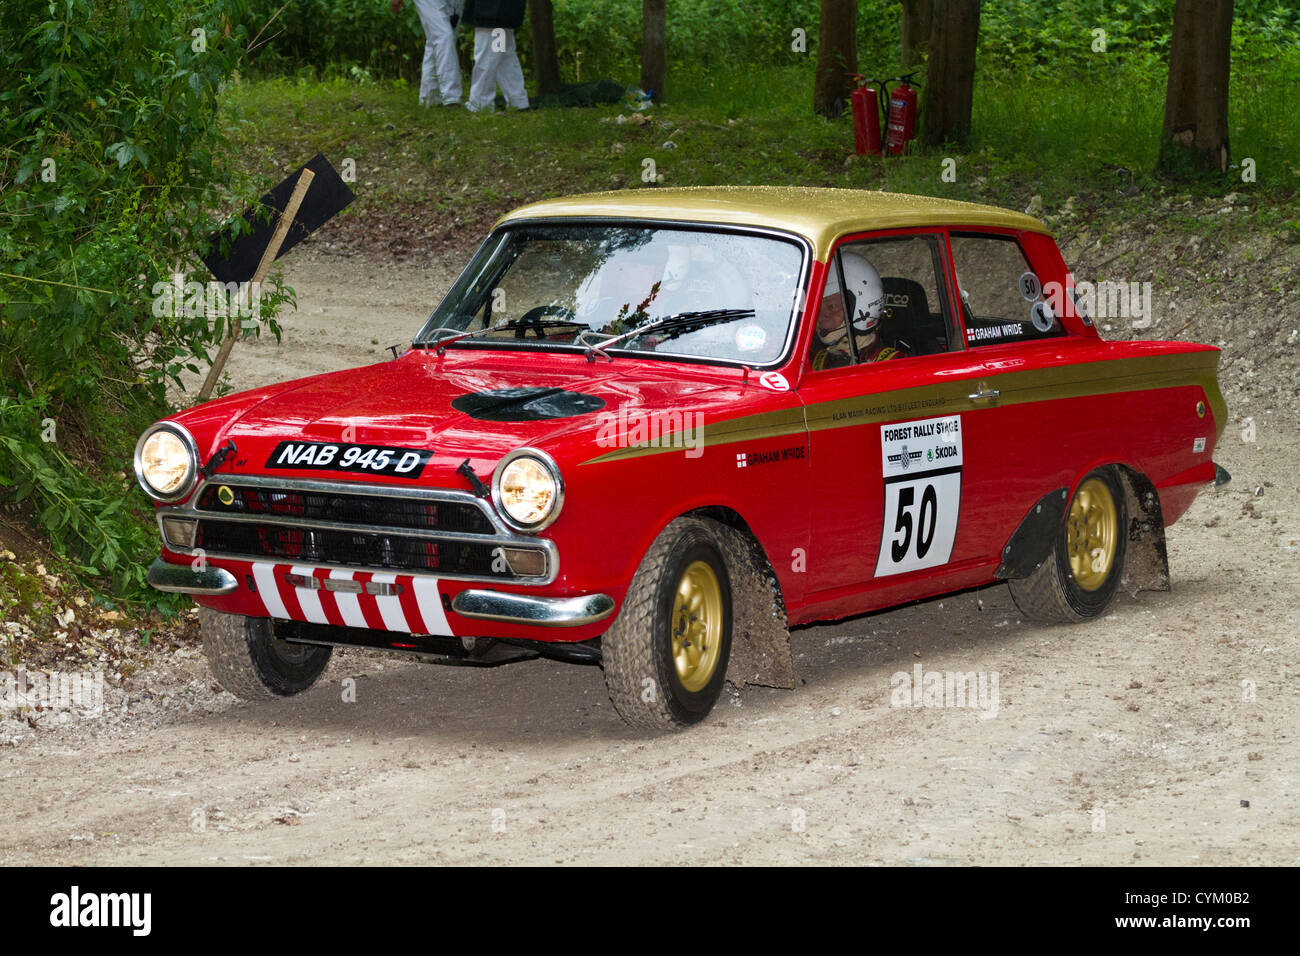 1966 ford lotus cortina rally car with driver simon wallis at the 2012 goodwood festival of